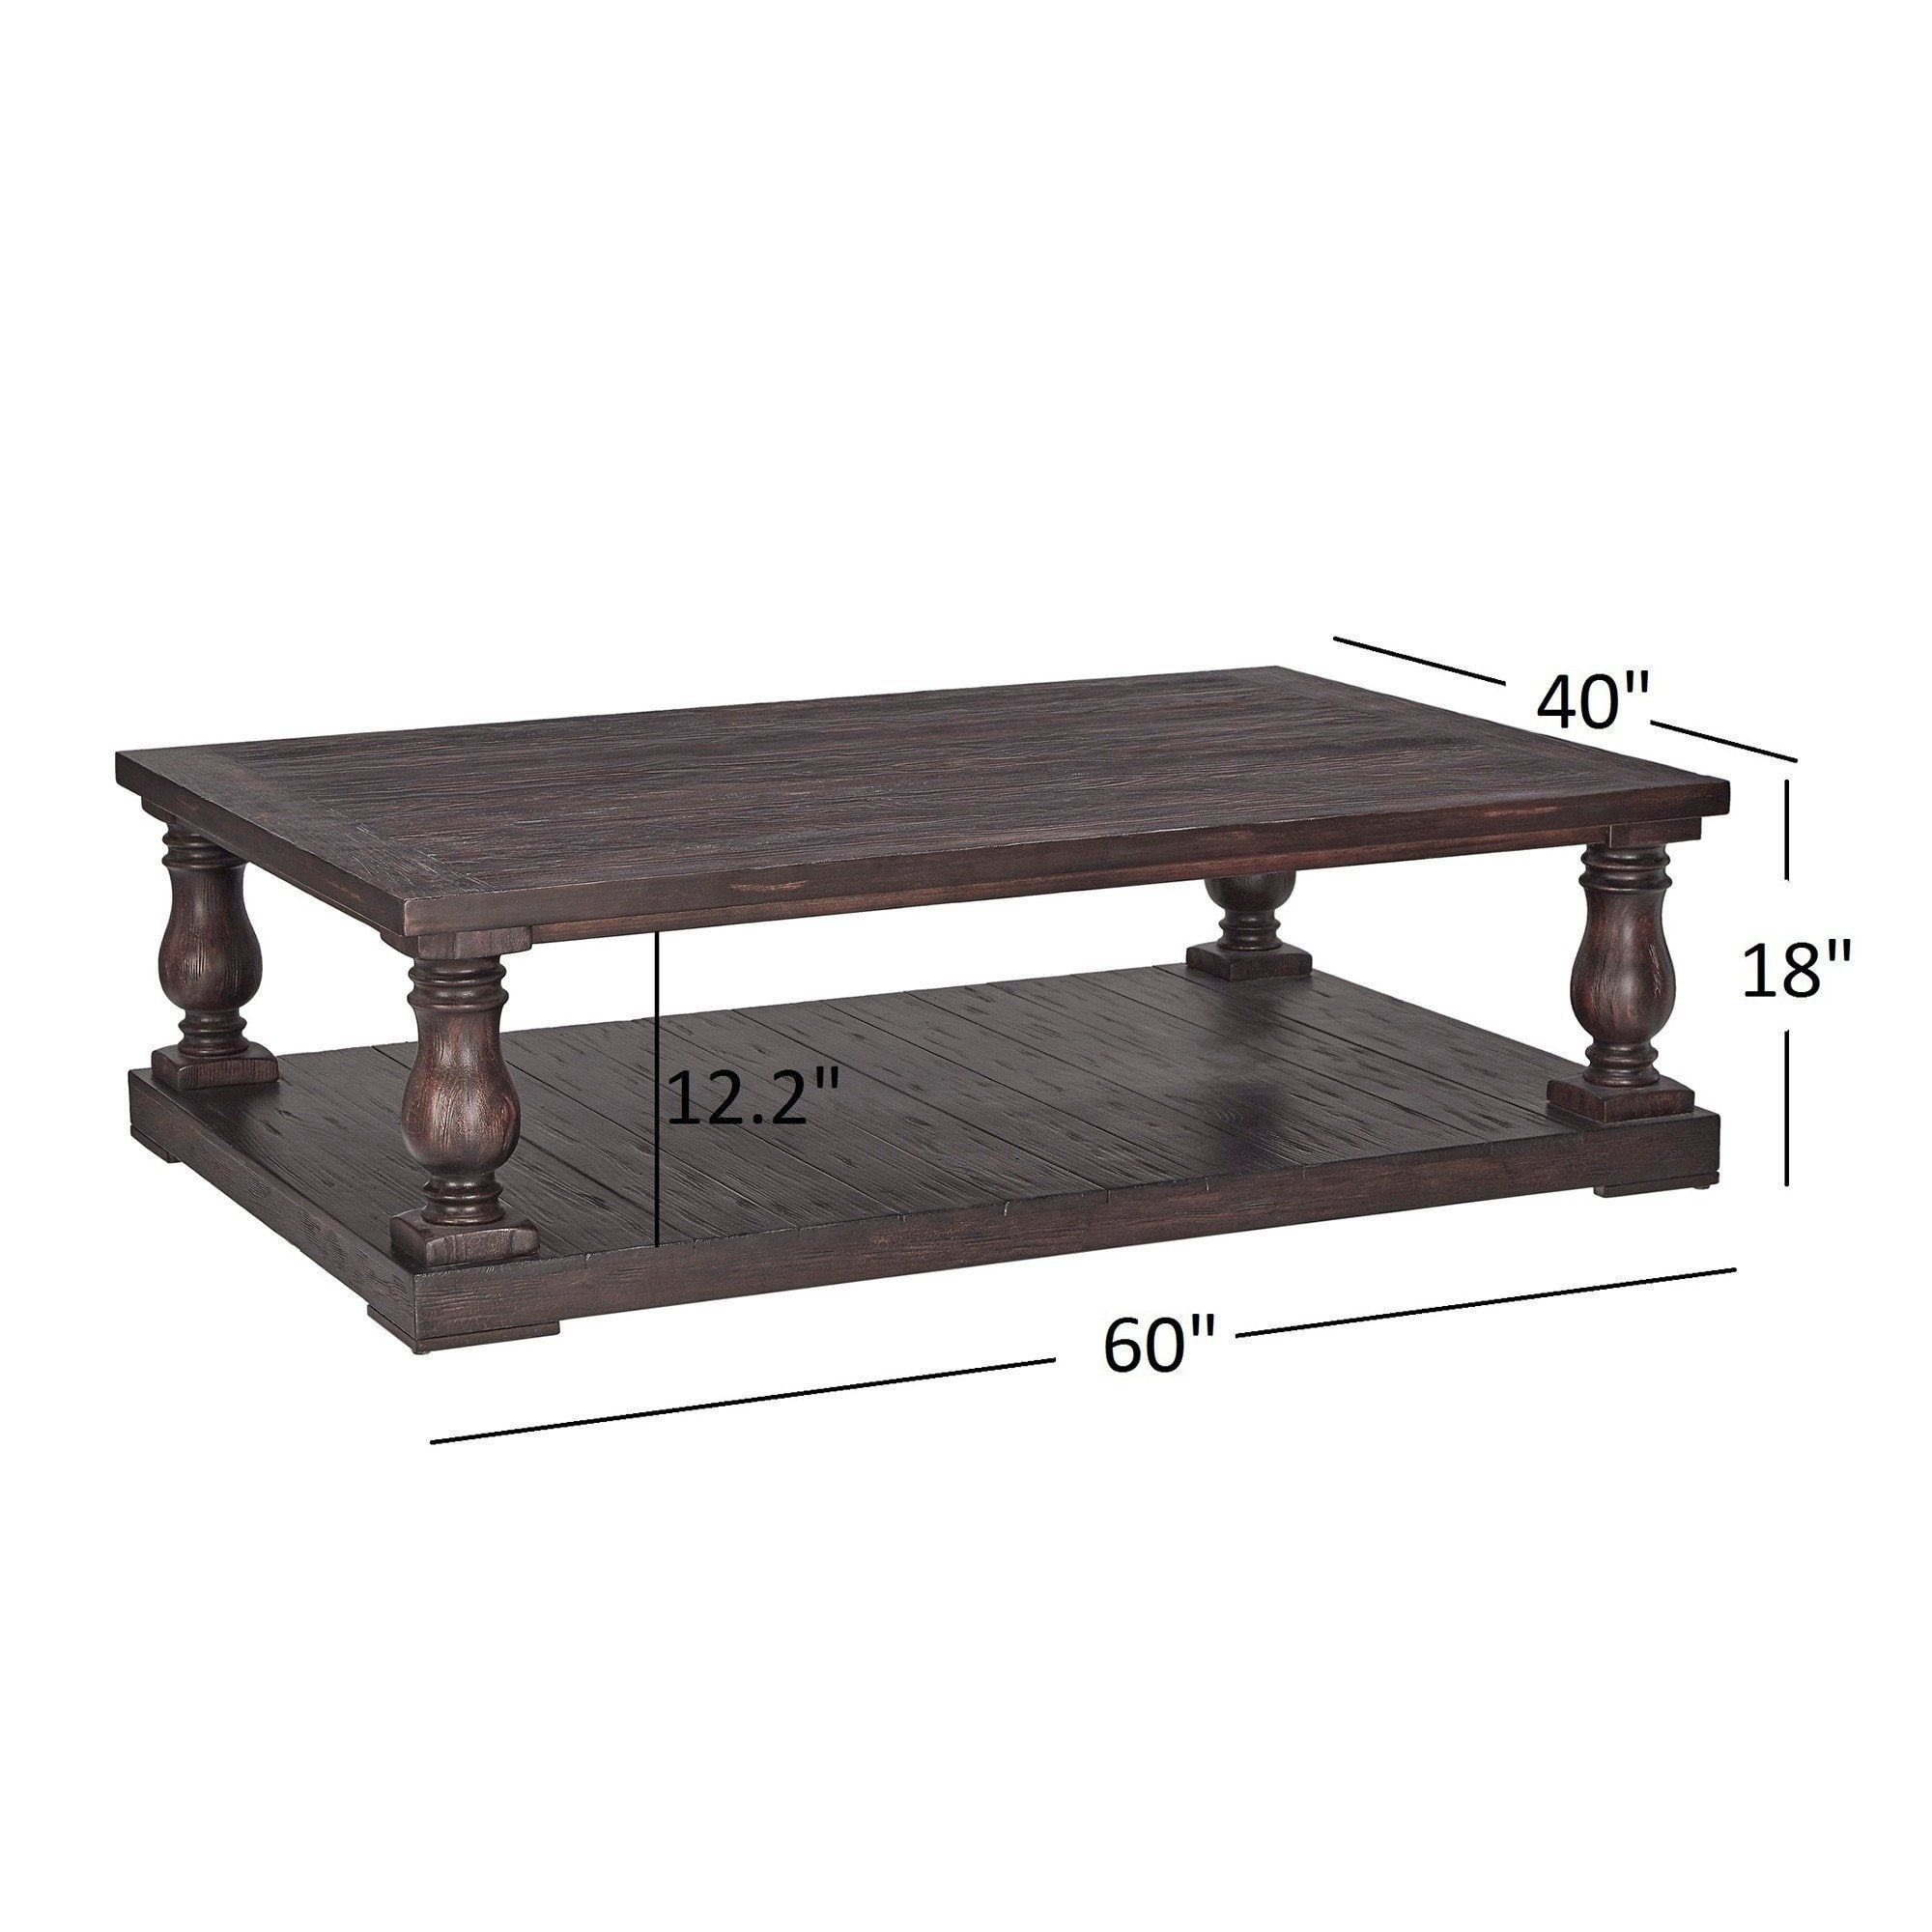 Edmaire Rustic Baluster 60 Inch Coffee Table By Inspire Q Artisan Charcoal Brown Finish In 2019 Living Room Decor Coffee Table Stand Table